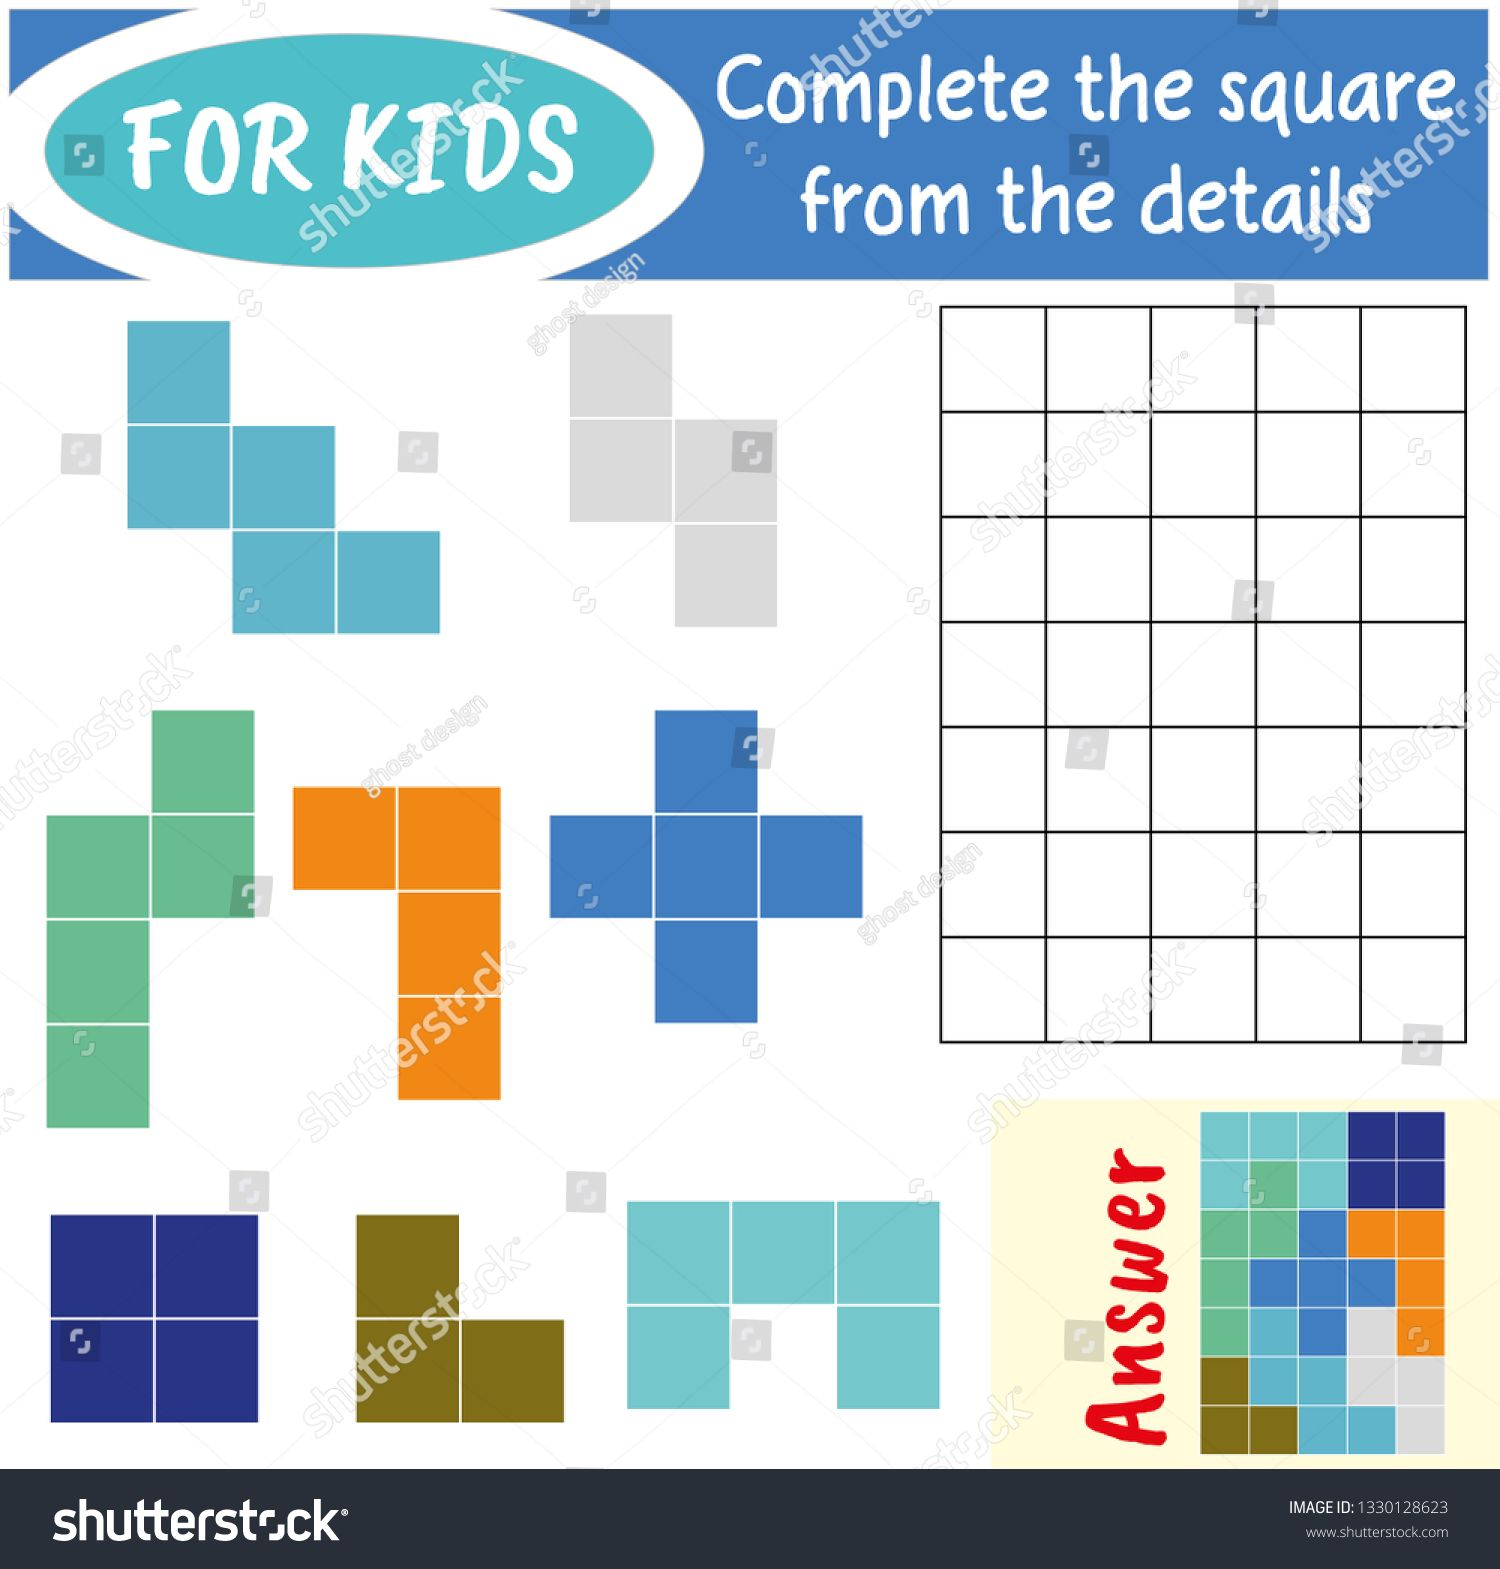 Puzzle Game With Colorful Details For Children Complete